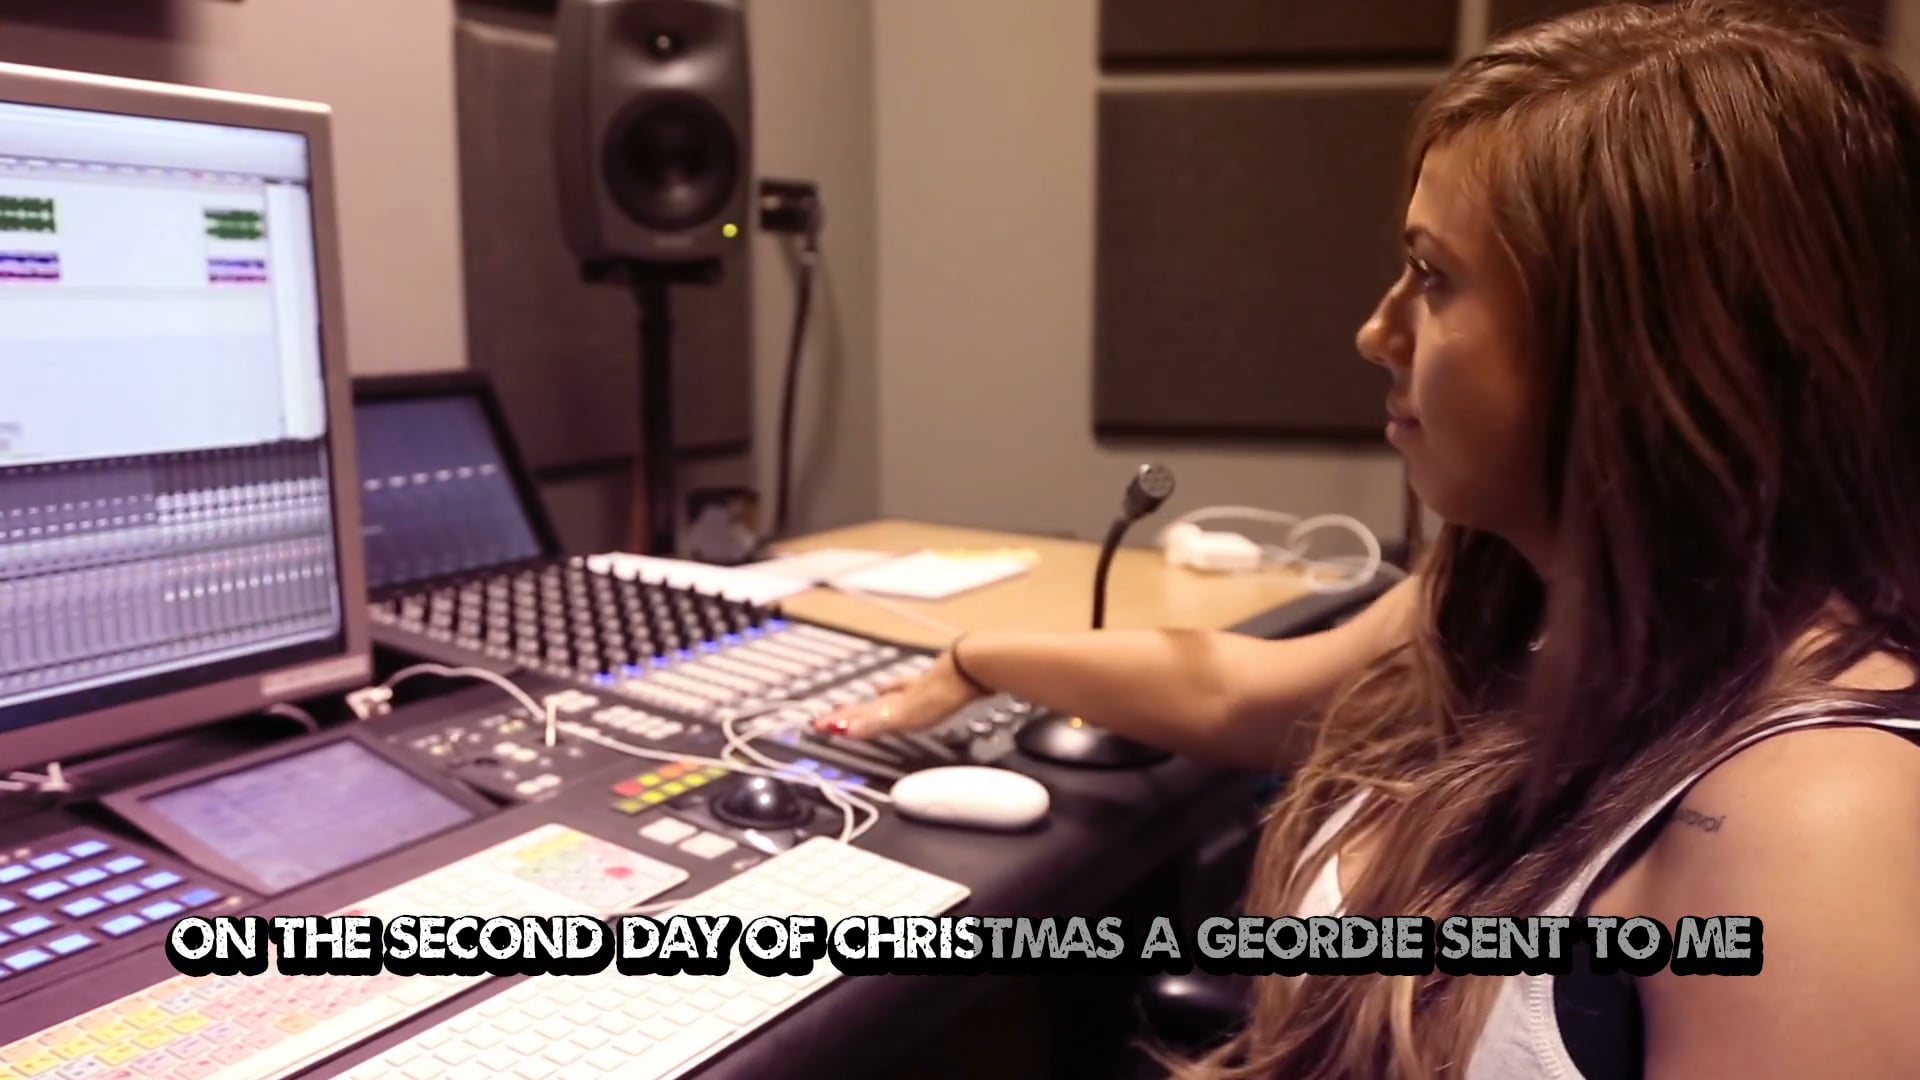 geordie shore xmas post 9pm with intro